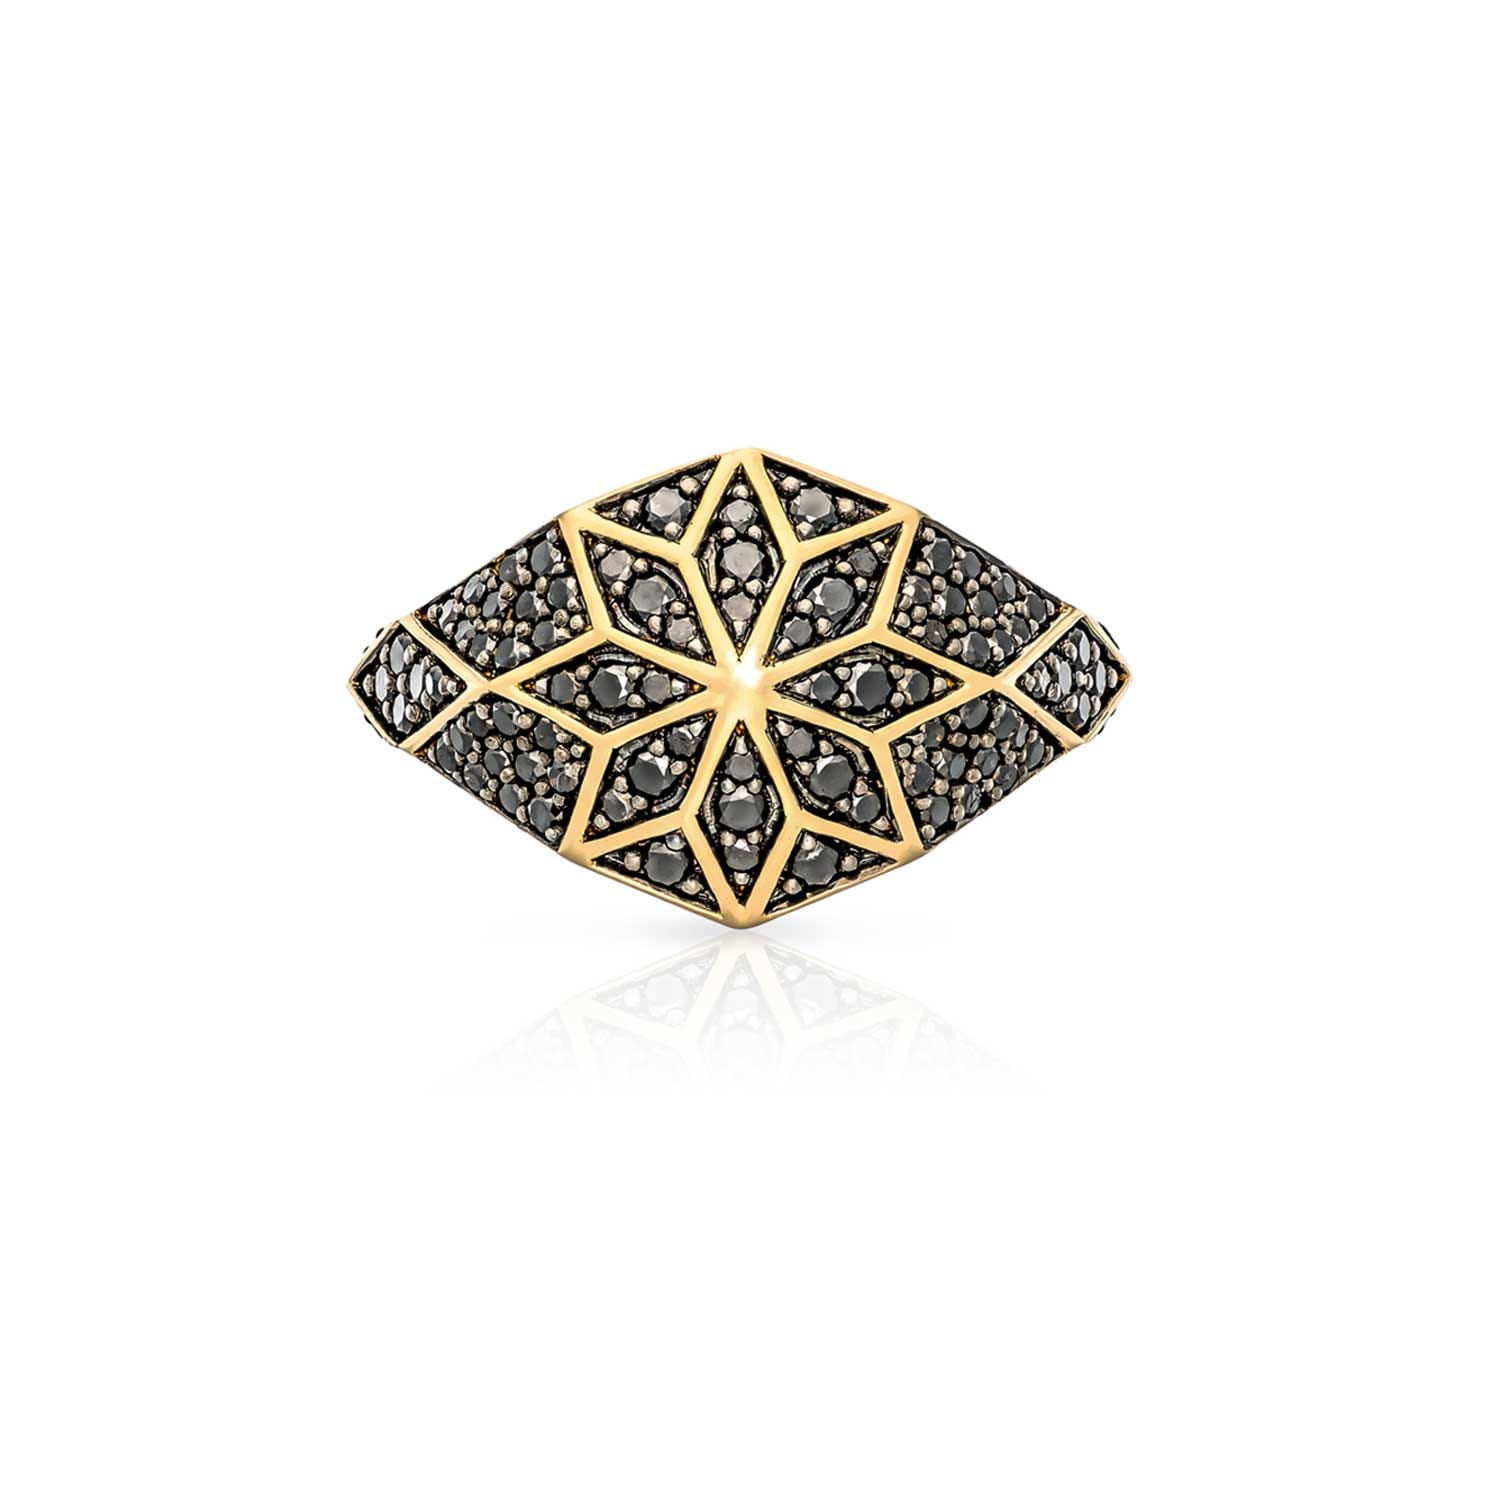 Venus Star Ring. 9k Yellow Gold / Black Diamond